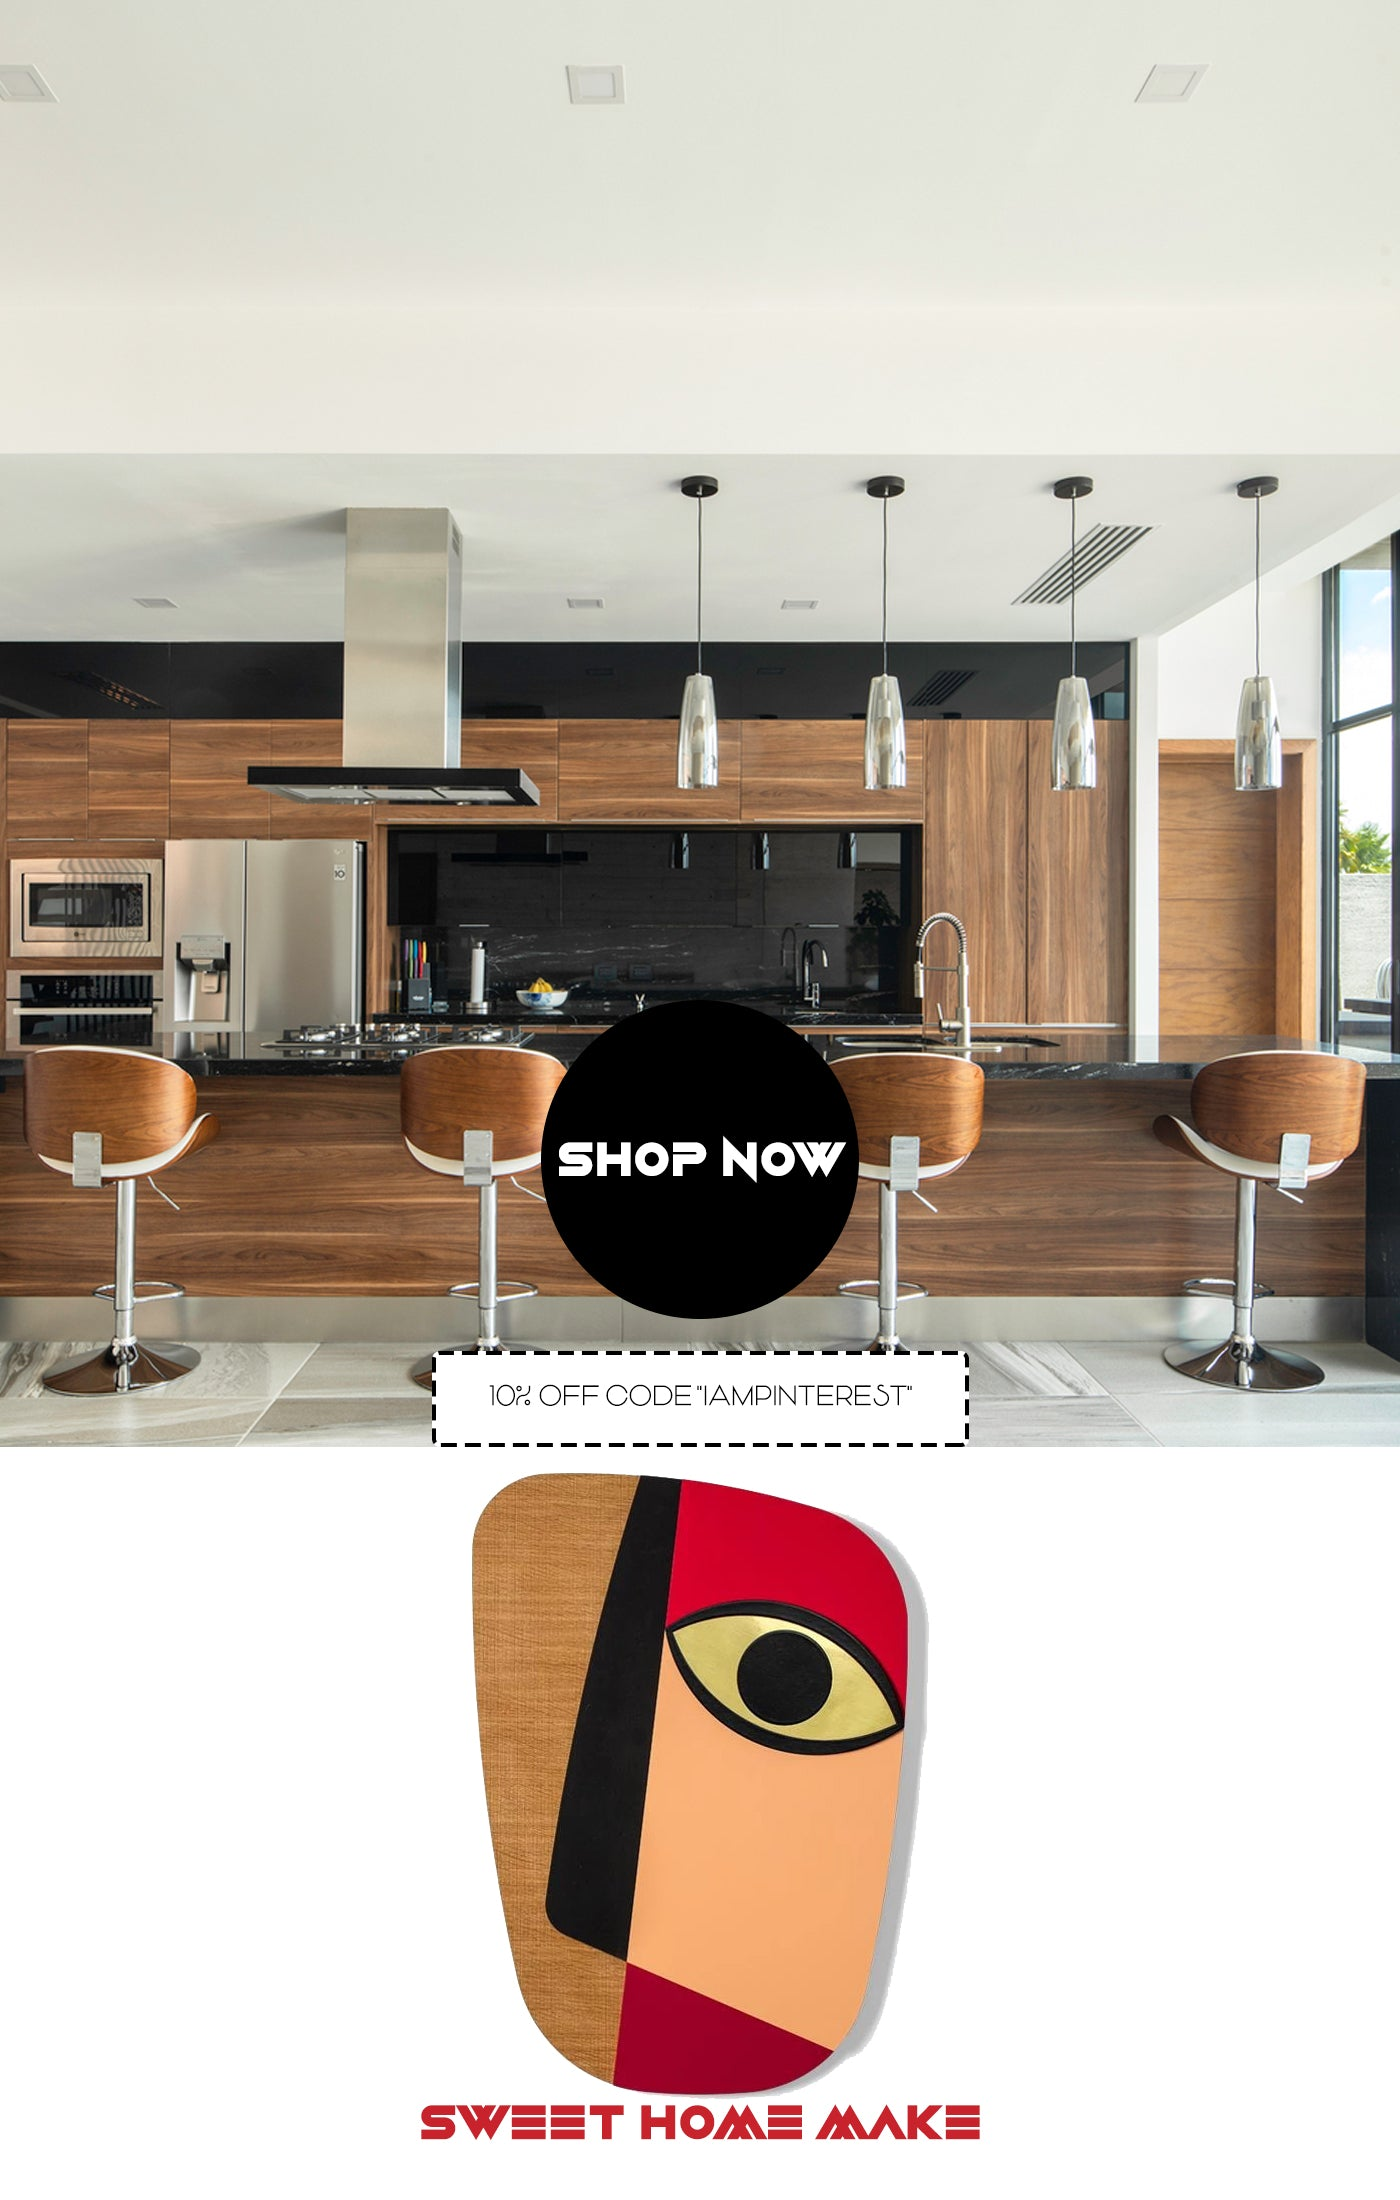 Abstract Kitchen Wall Decor for Modern Interior Design